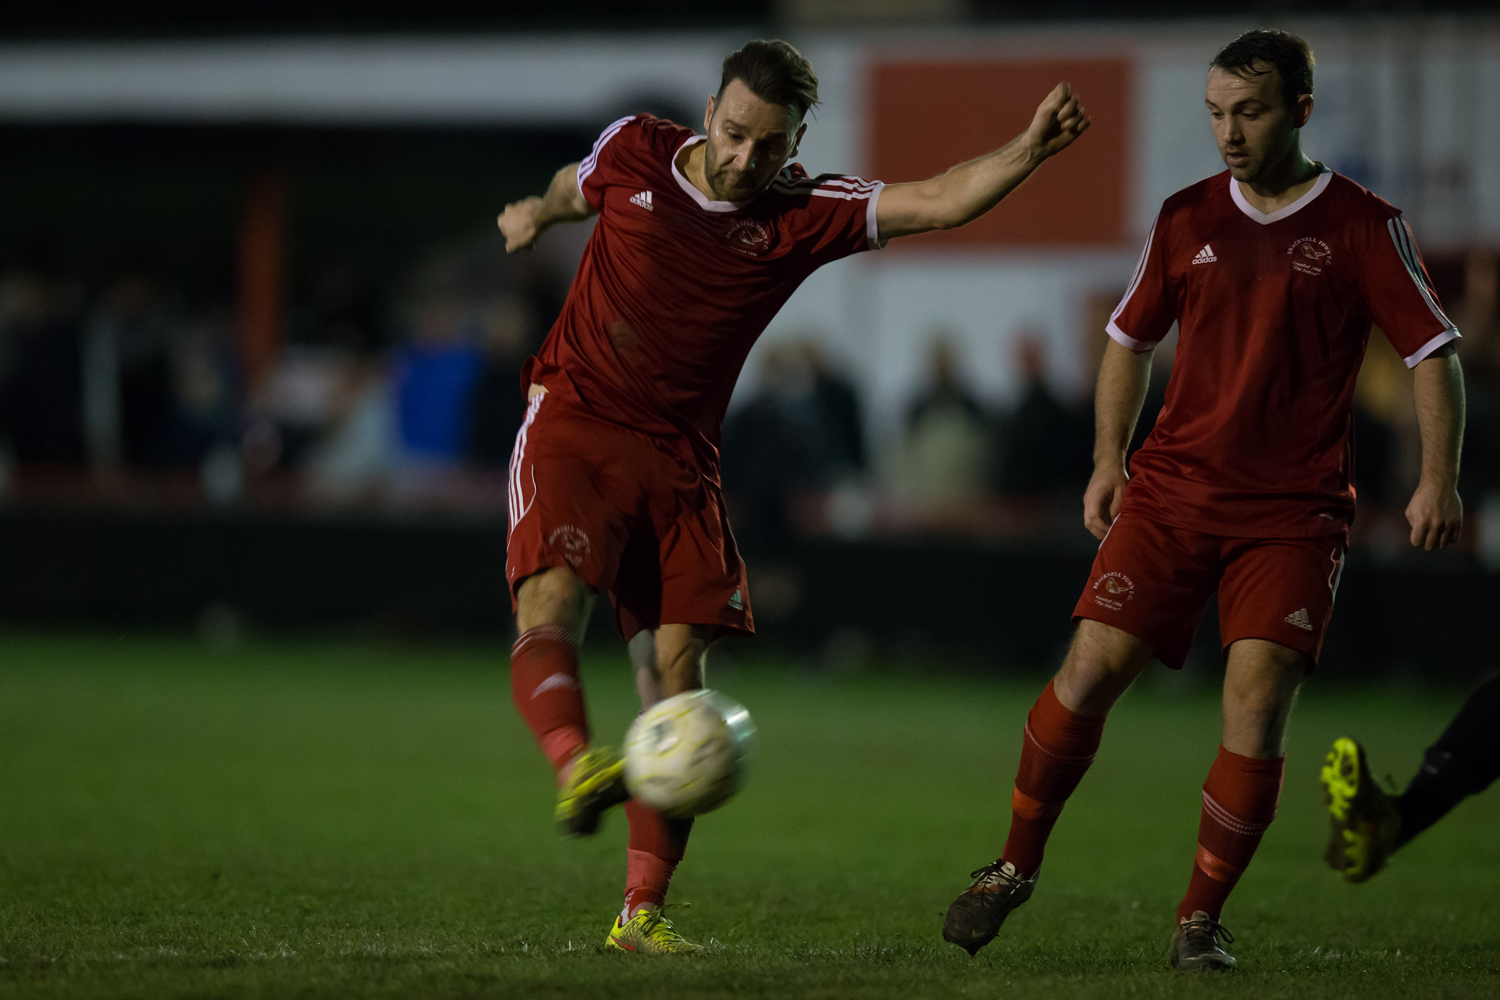 Watch: Adam Cornell's third goal against Wokingham